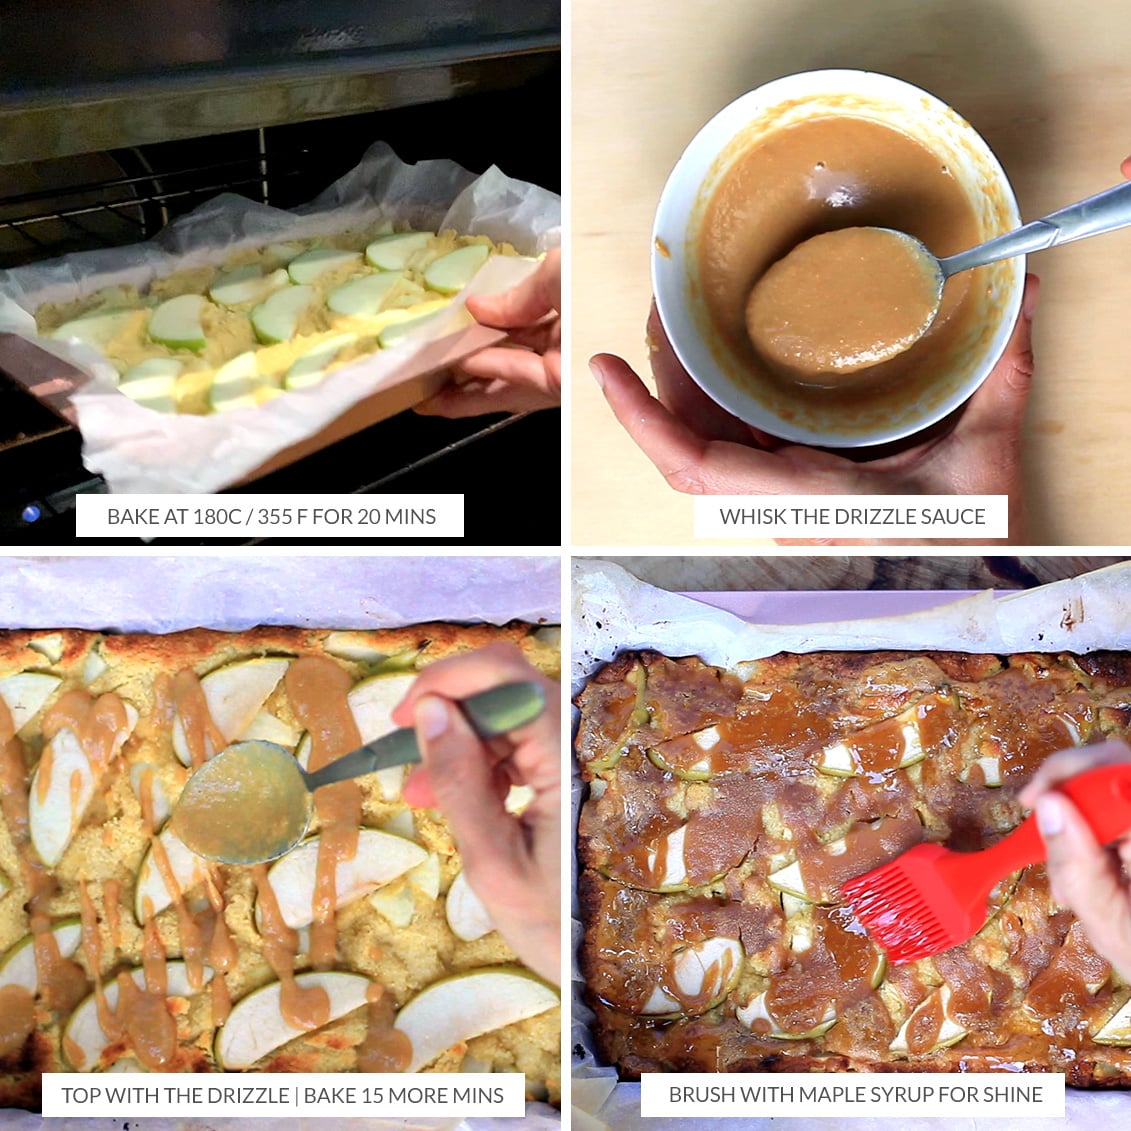 Baking apple pie slice and making the maple peanut butter drizzle to go on top